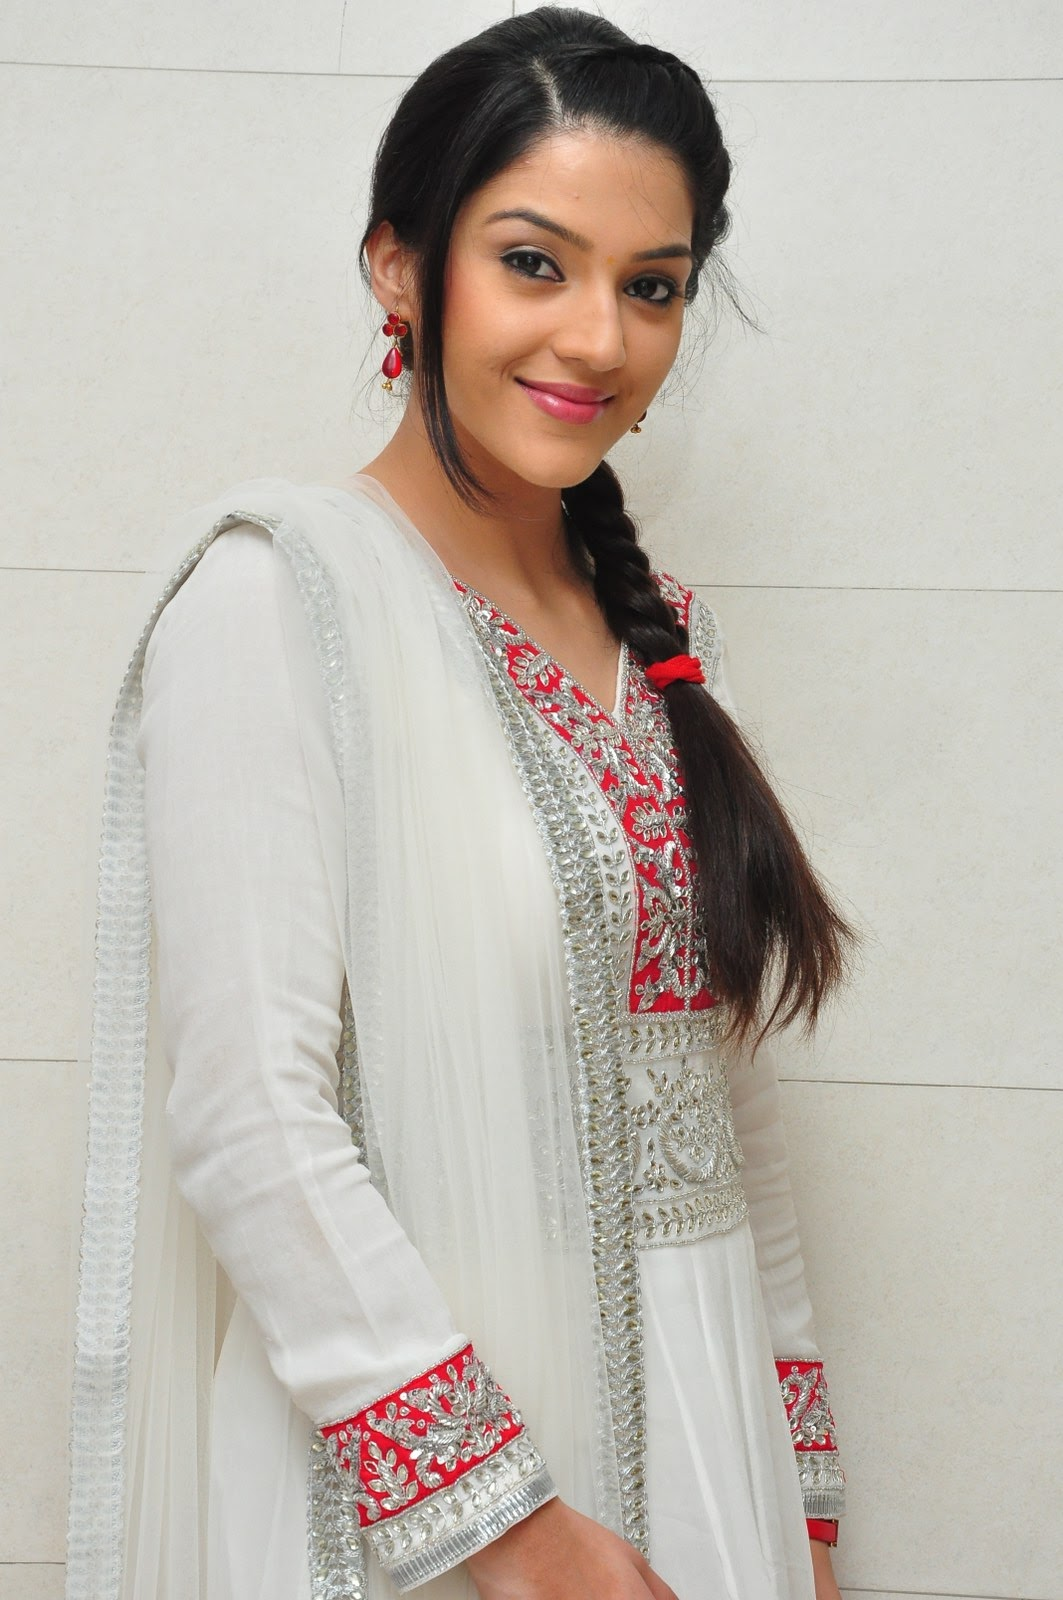 Kvpg heroine Mehreen photos-HQ-Photo-16